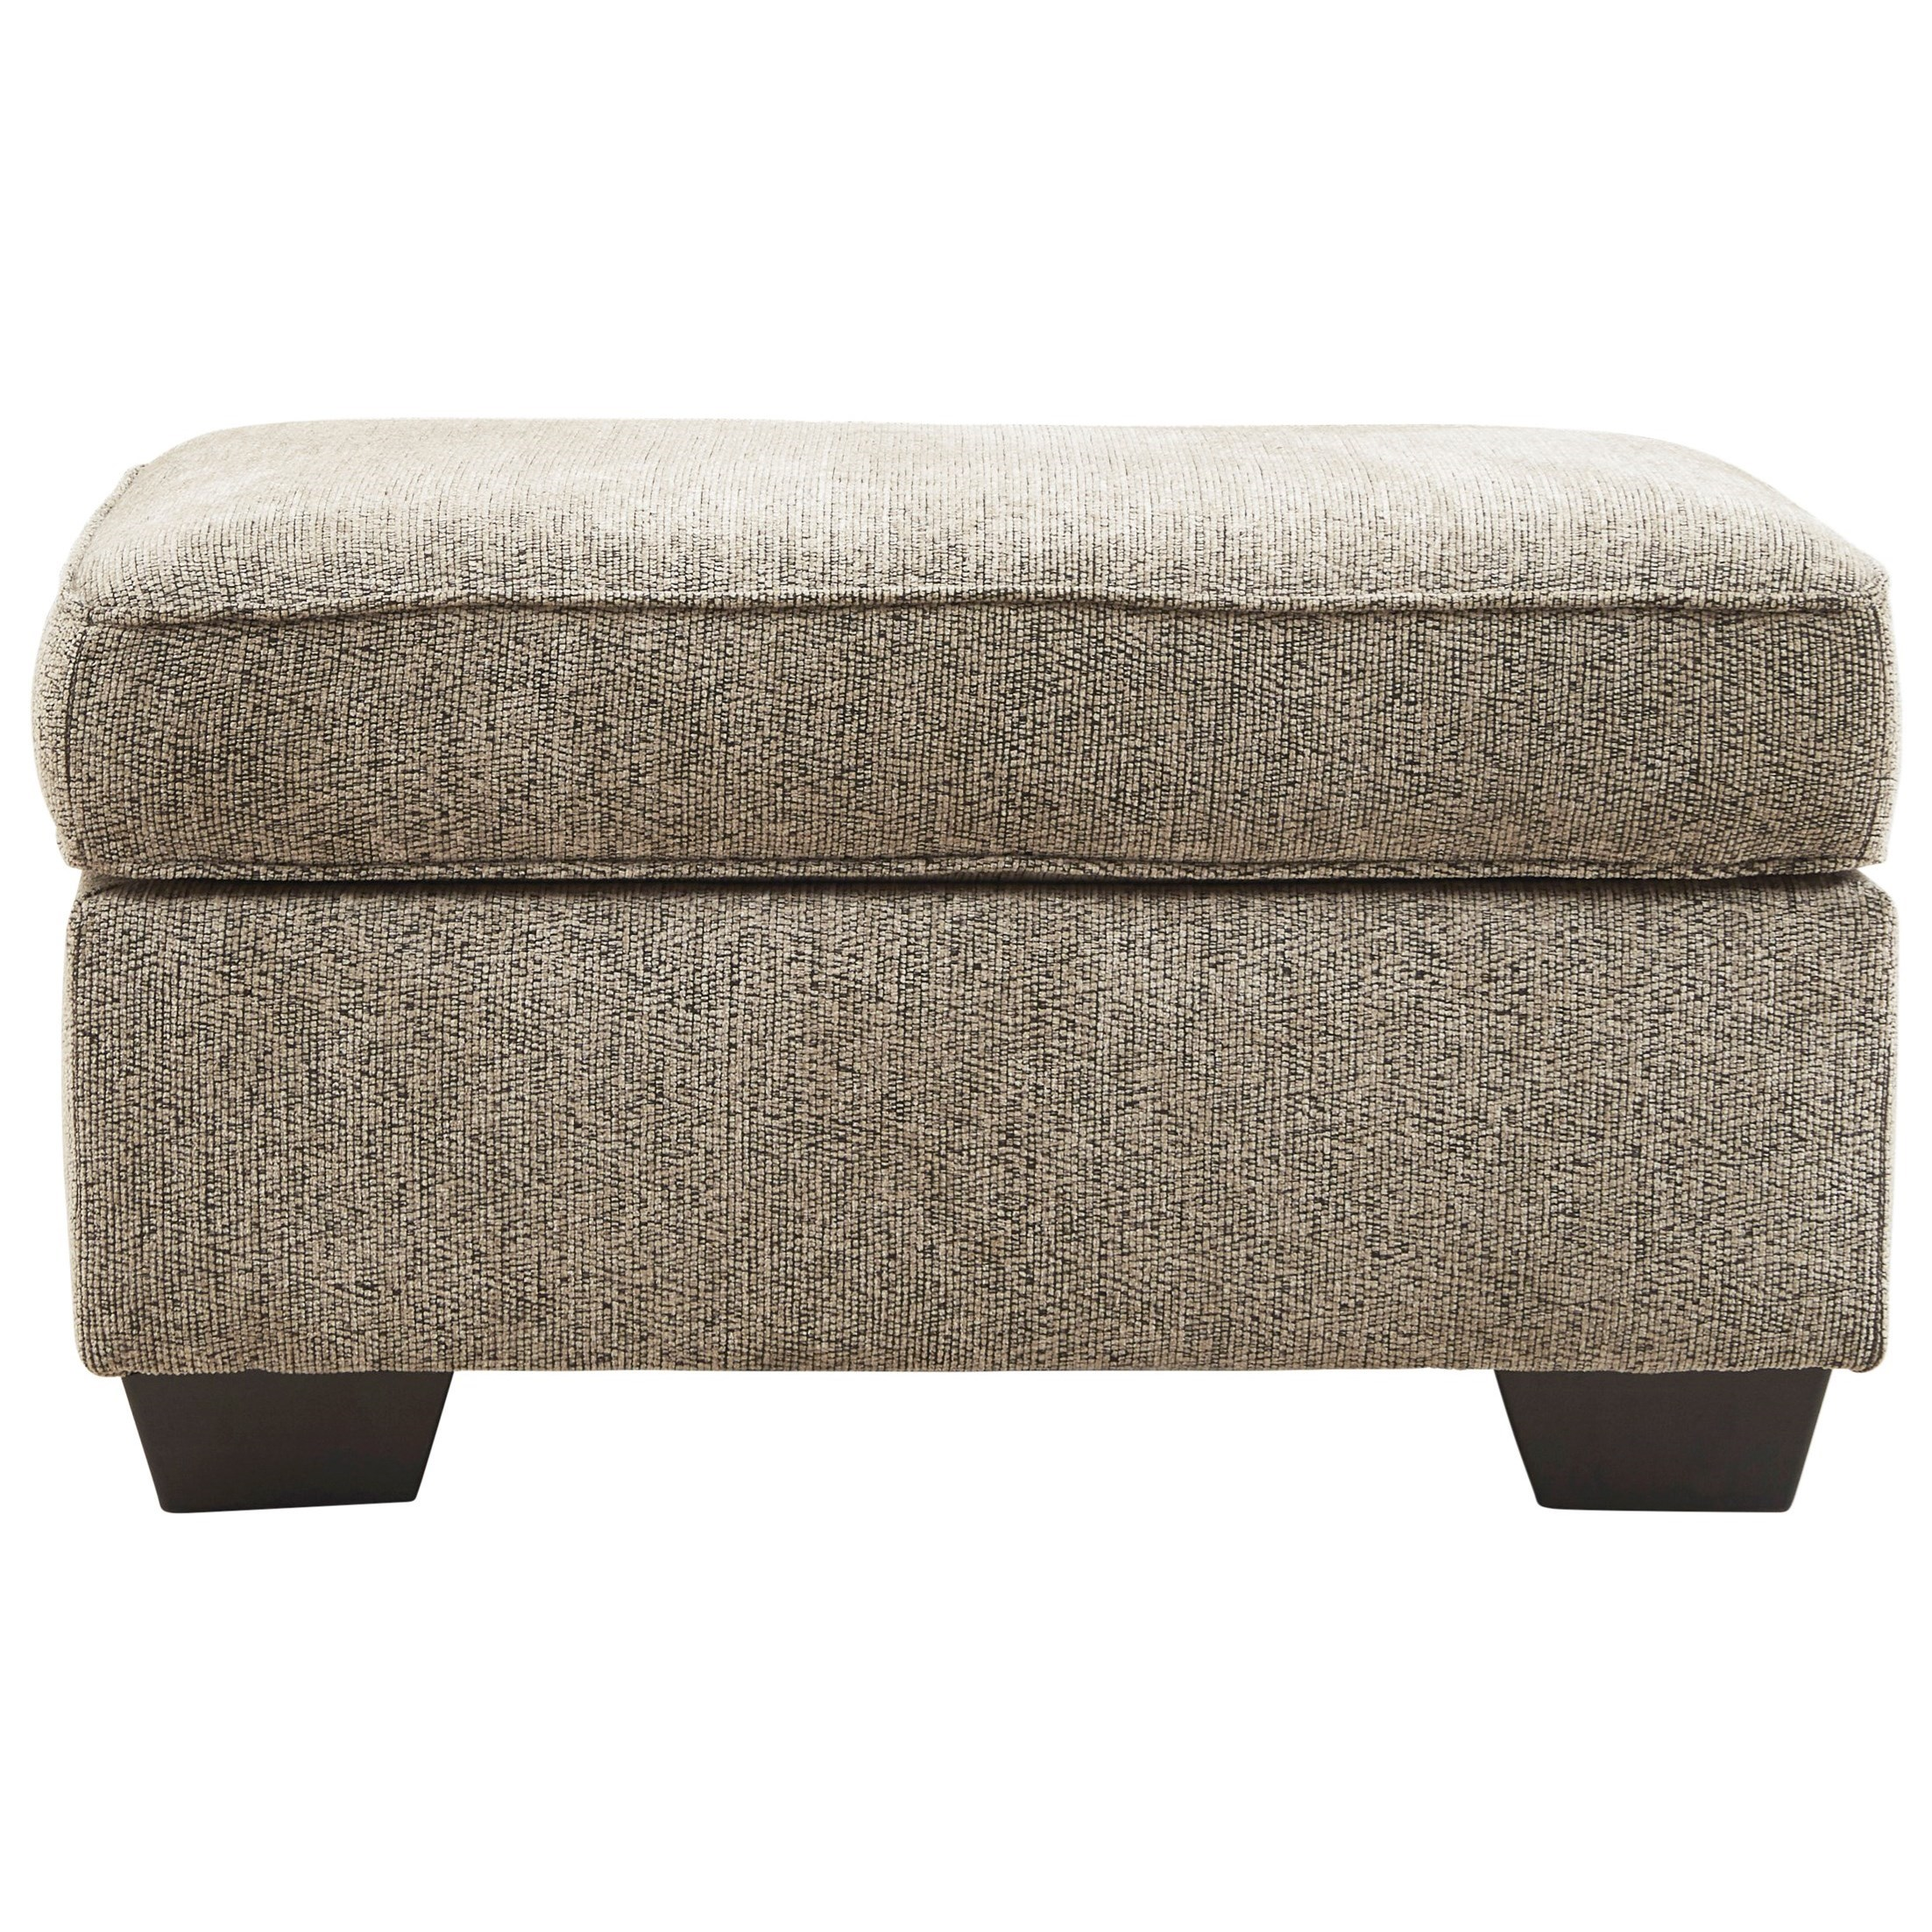 McCluer Ottoman by Benchcraft at Northeast Factory Direct